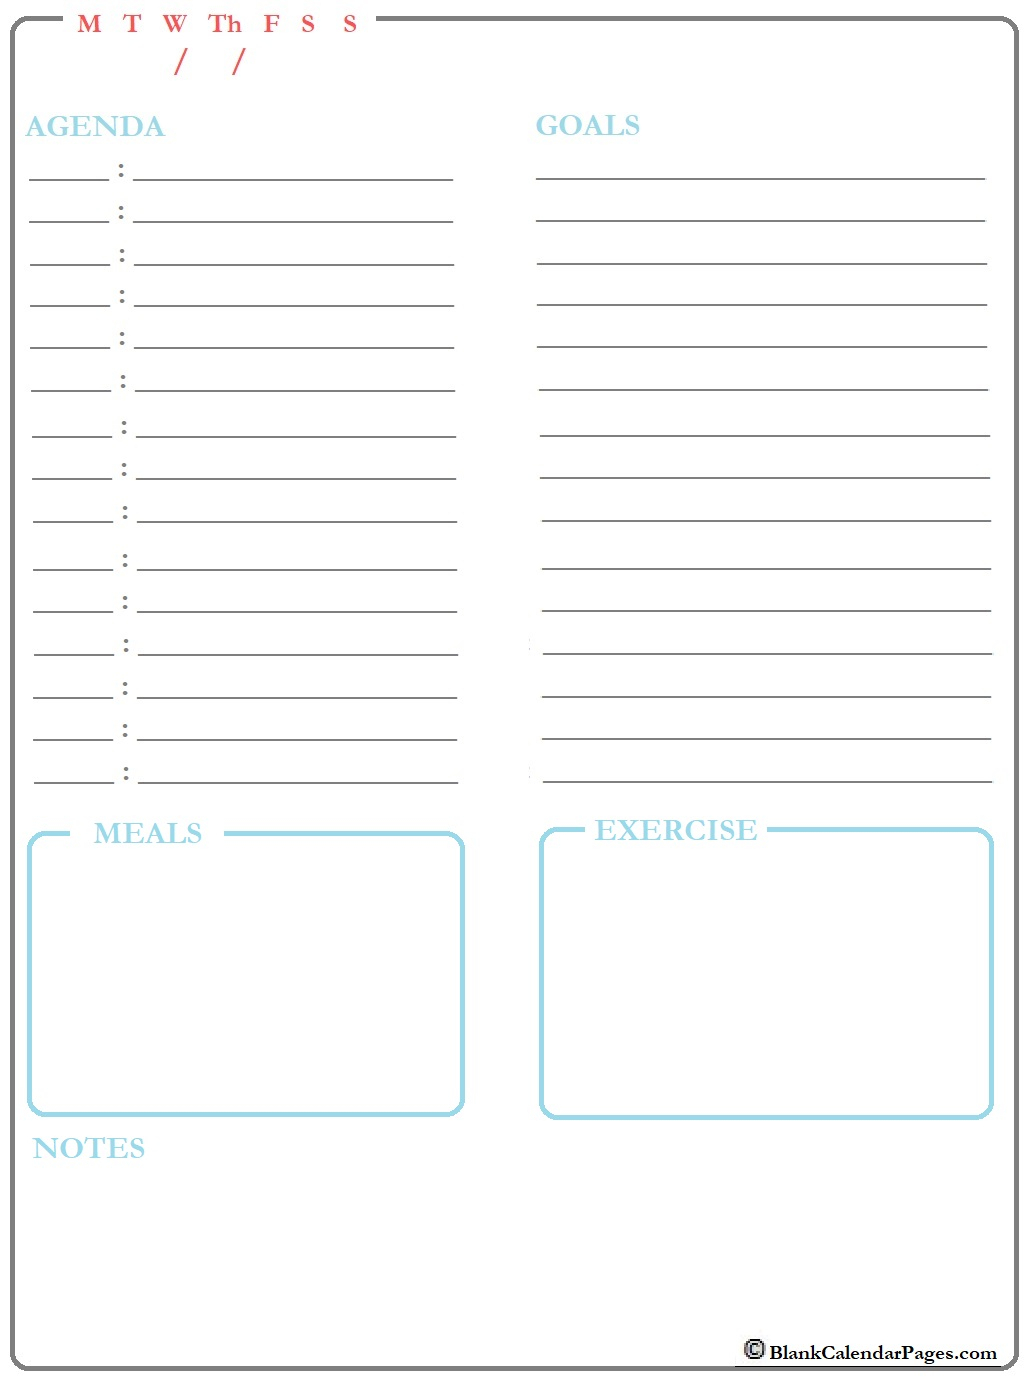 August 2019 Daily Calendar Template| August 2019 Daily Planner with Daily Planner Printable Calendar Templates